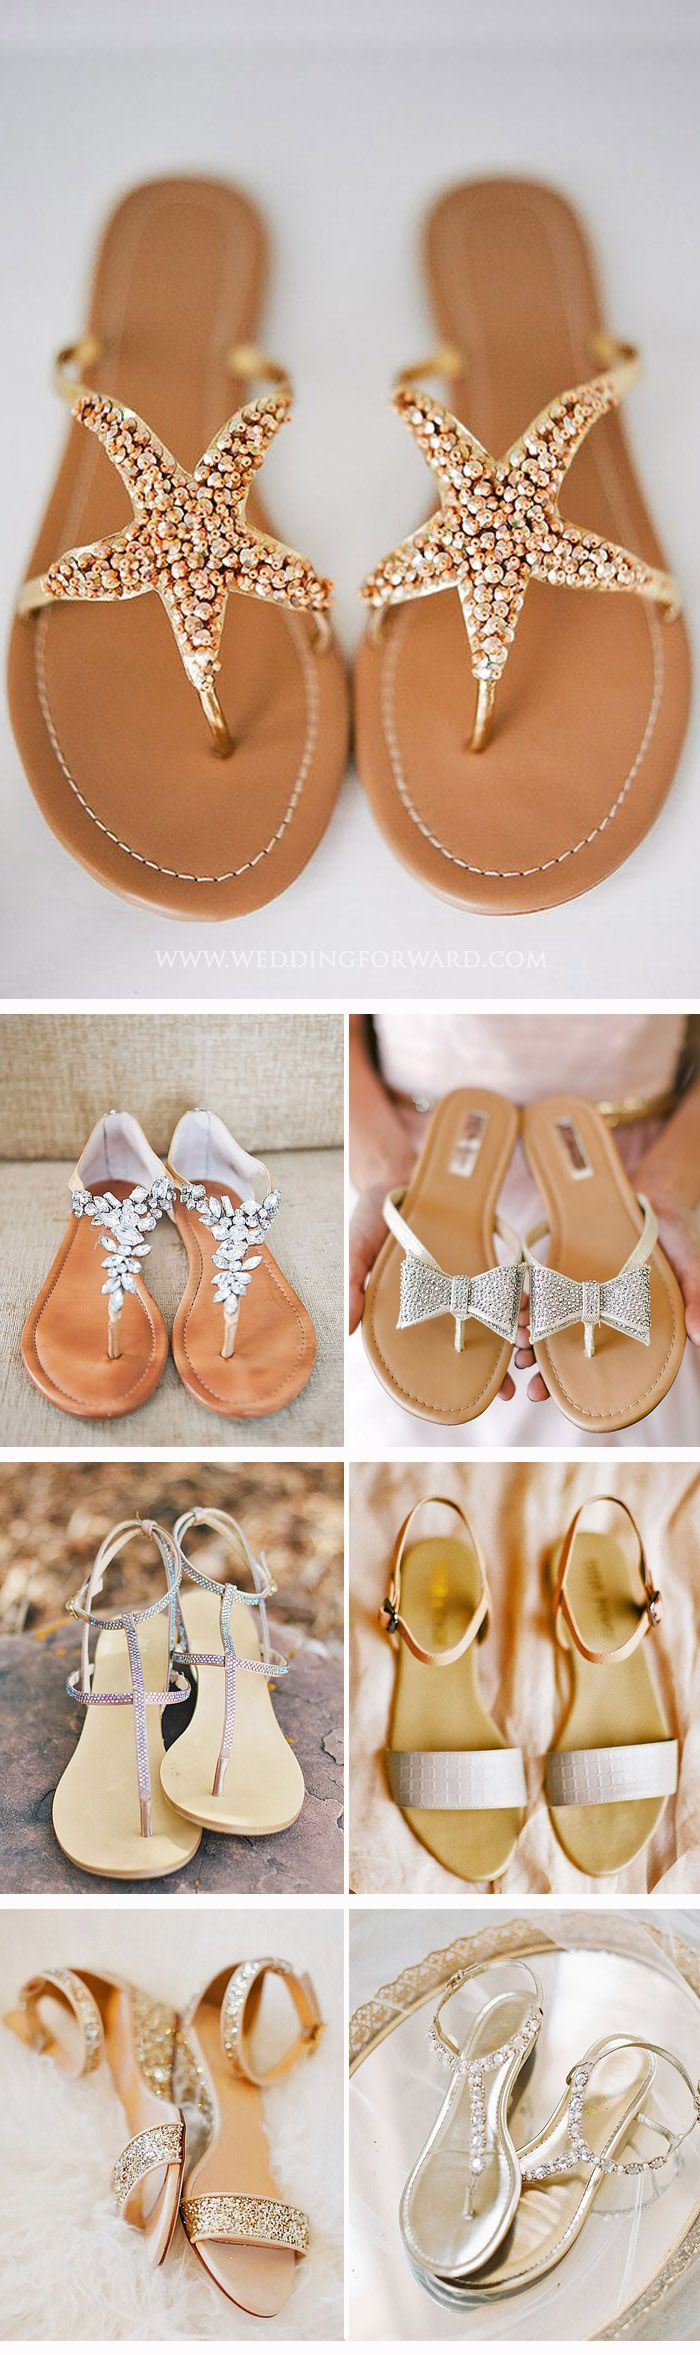 24 Wedding Sandals You'll Want To Wear Again ❤ Perfect for summer beach wedding, flat, comfortable - wedding sandals have many advantages. See more: http://www.weddingforward.com/wedding-sandals/ #weddings #shoes                                                                                                                                                                                 More